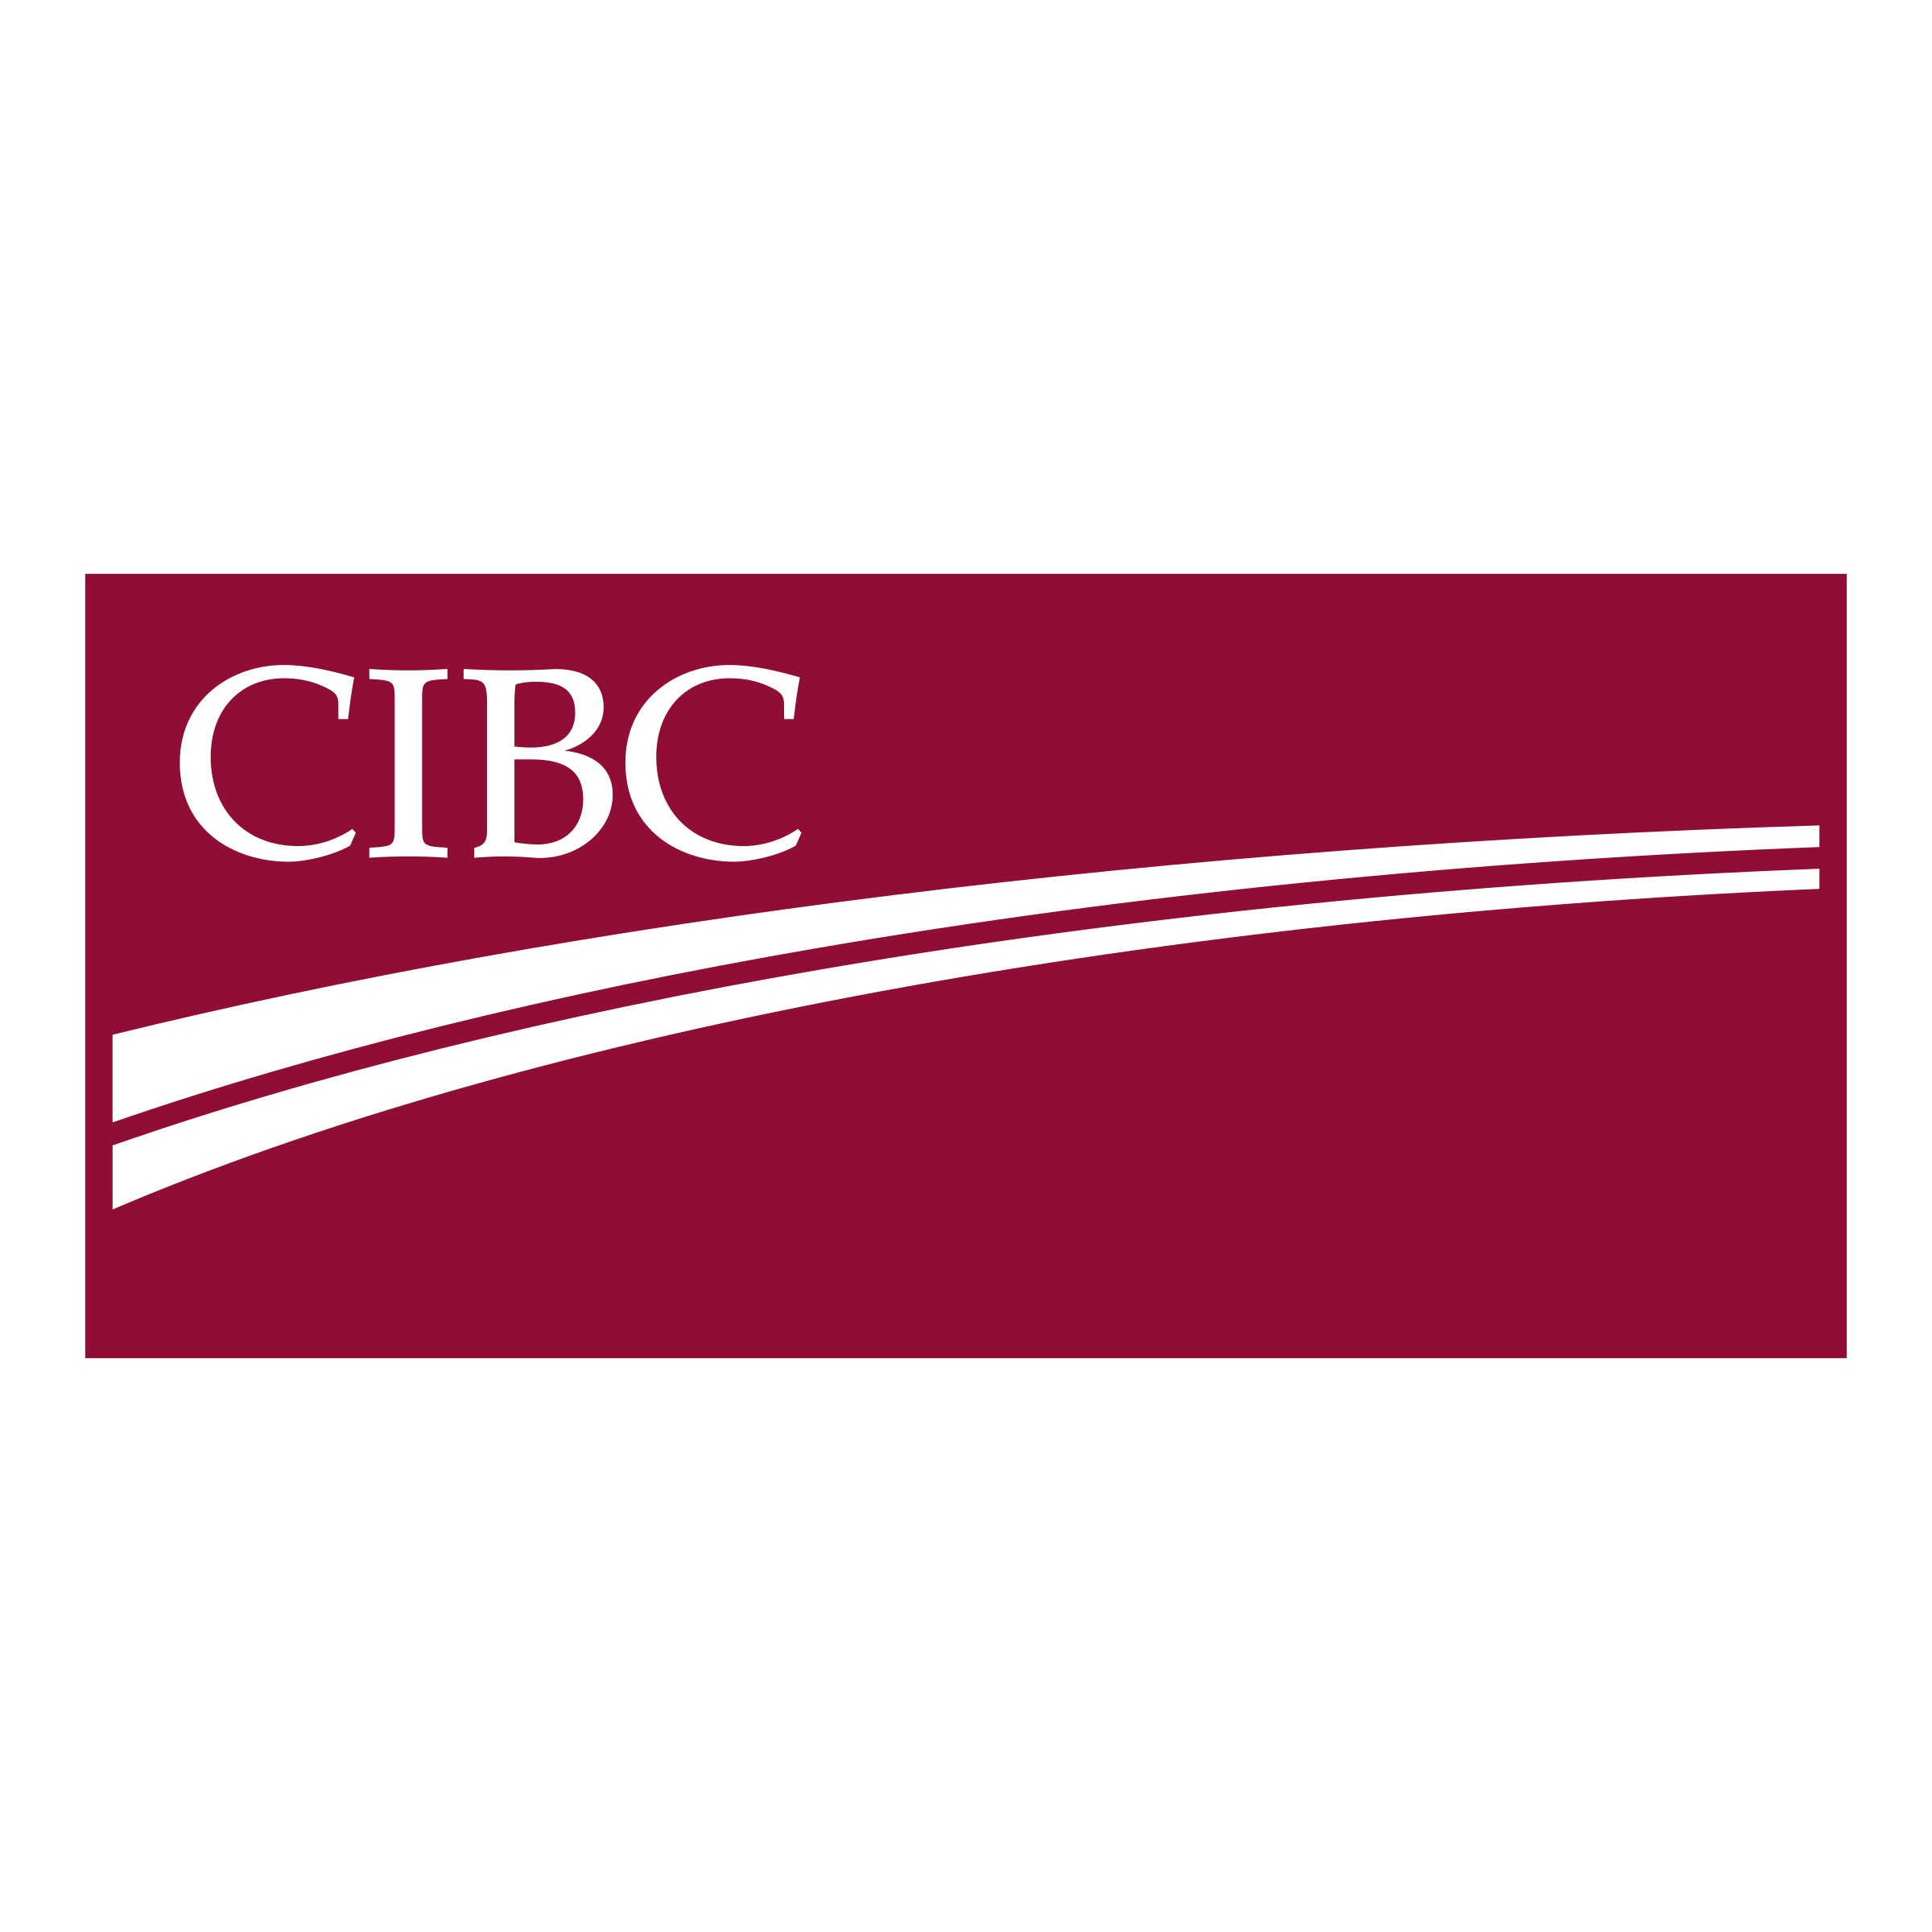 CIBC Logo PNG Transparent & SVG Vector.